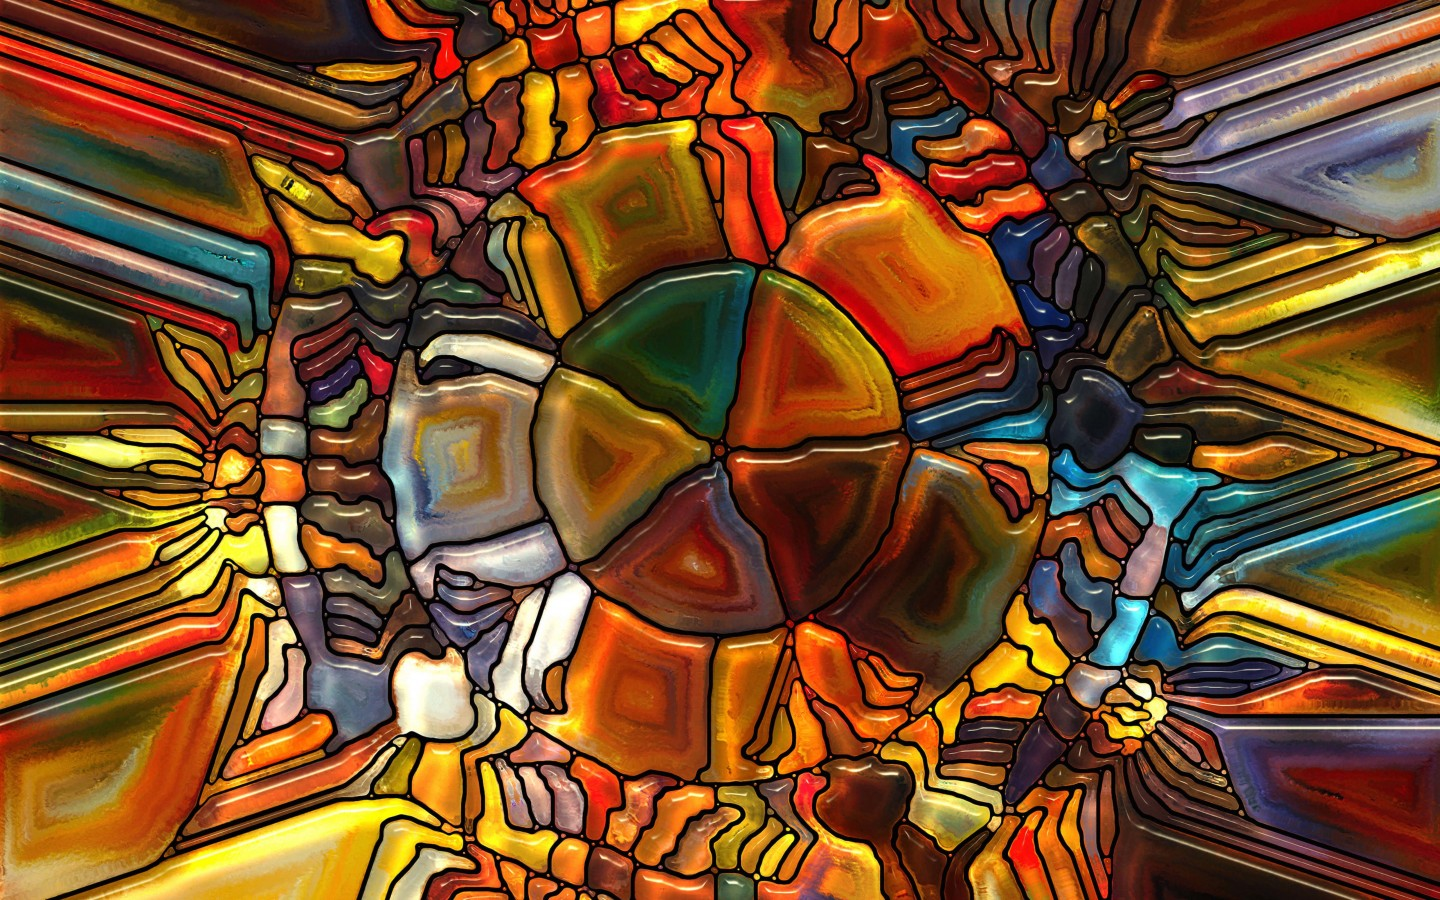 Psychedelic Stained Glass Wallpaper for Desktop 1440x900